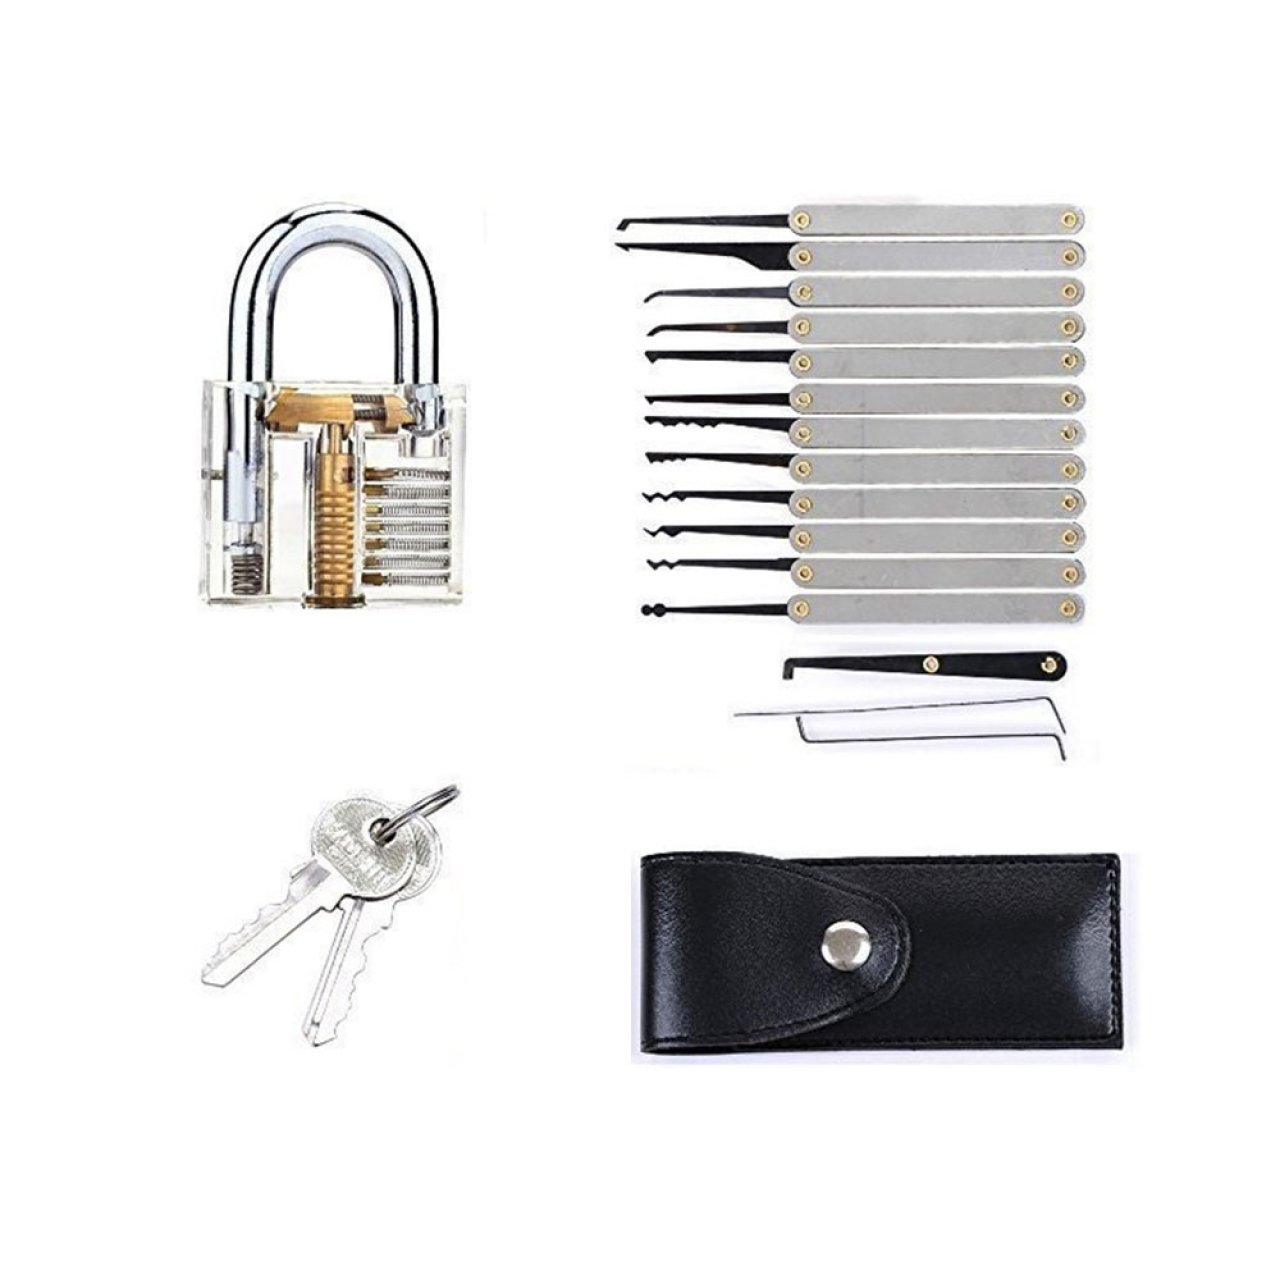 lockpicking pick set mit transparentem vorh ngeschloss als dietrich set zum ben und lernen. Black Bedroom Furniture Sets. Home Design Ideas